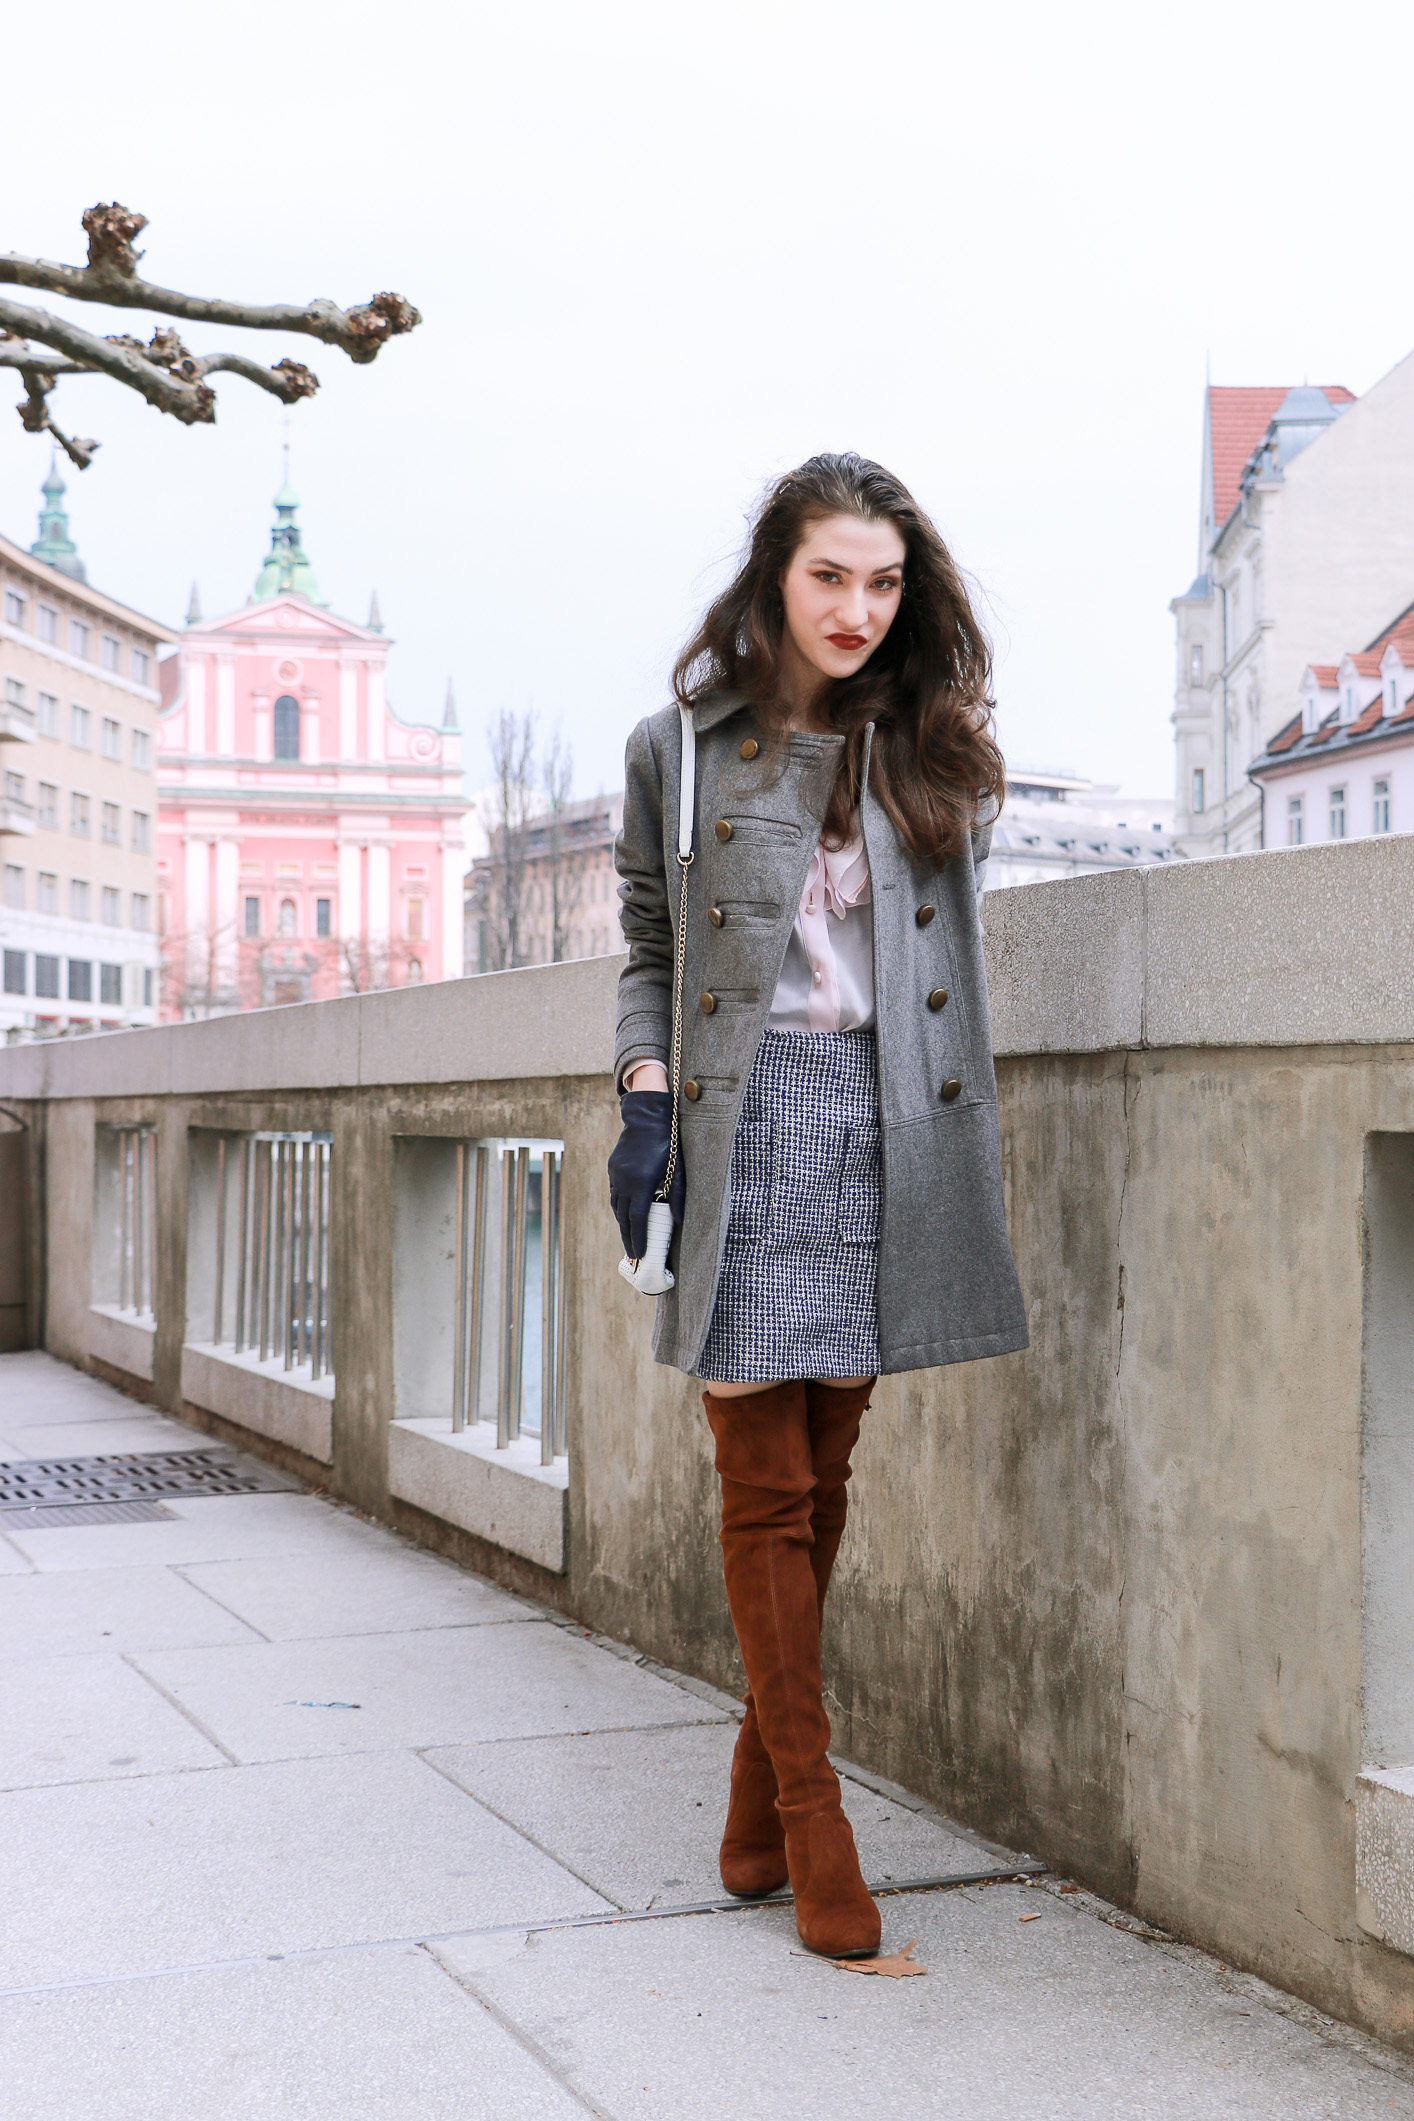 Fashion blogger Veronika Lipar of Brunette From Wall Street sharing her chic casual outfit